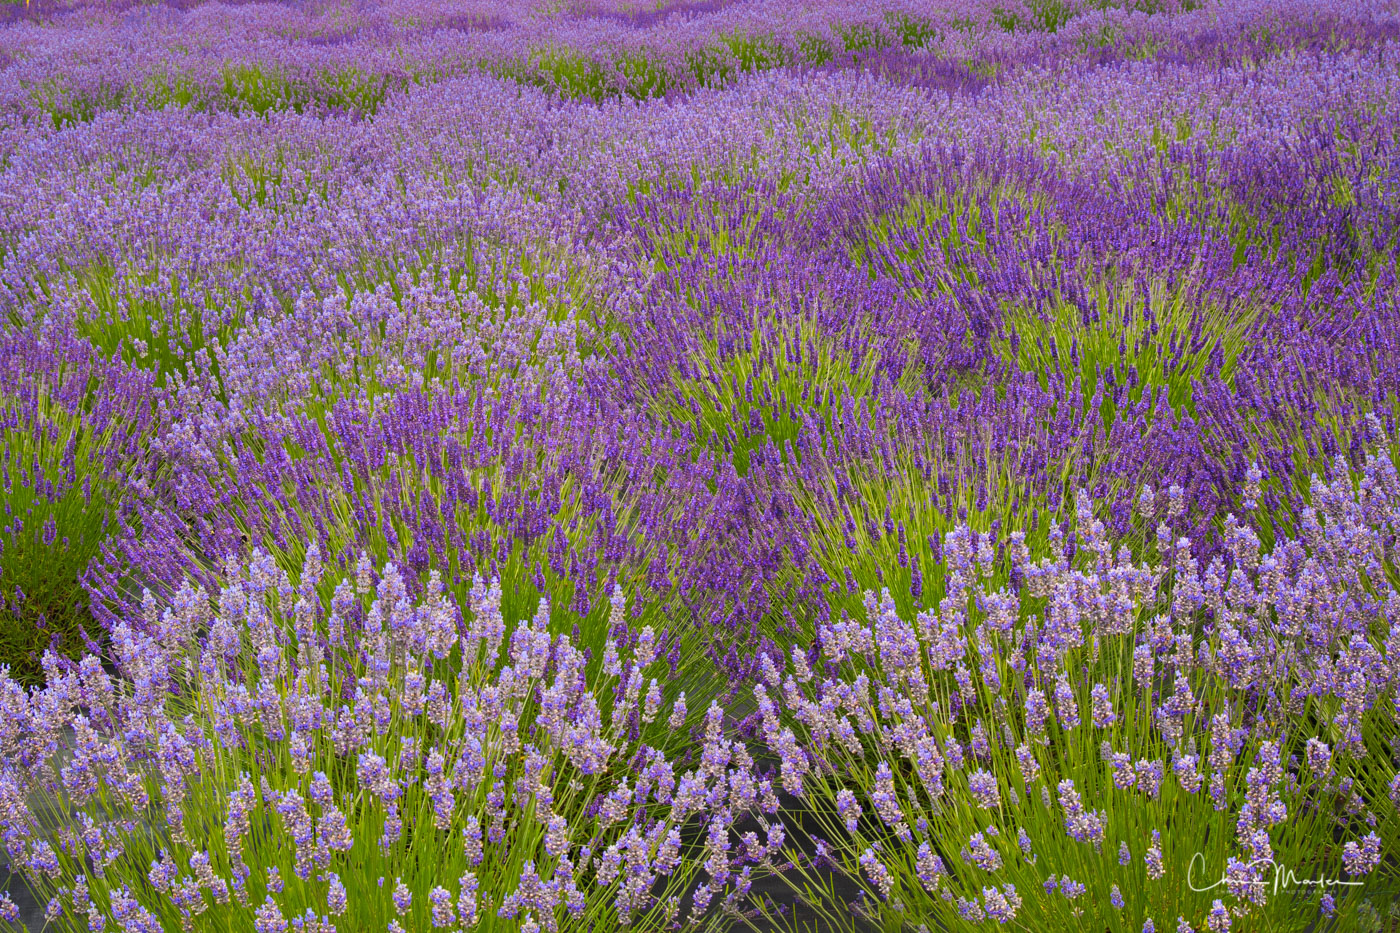 Purple Lavender field in the San Juan Islands of Washington state.  These beautiful flowers not only look great, but they smell...